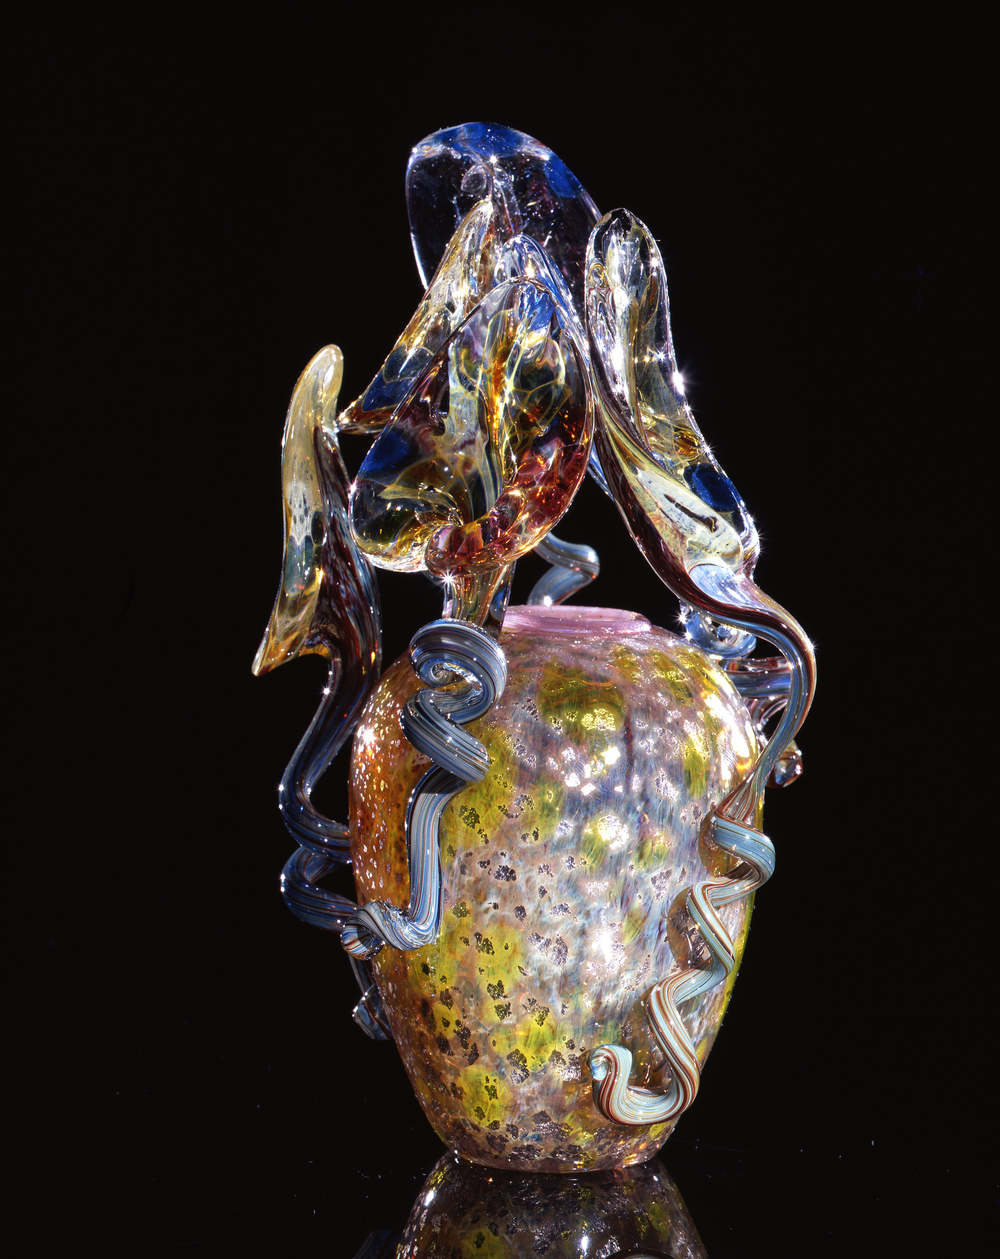 Dale Chihuly,  Lavender Piccolo Venetian with Cerulean Lilies  (1993, glass, 8 x 5 x 5 inches)